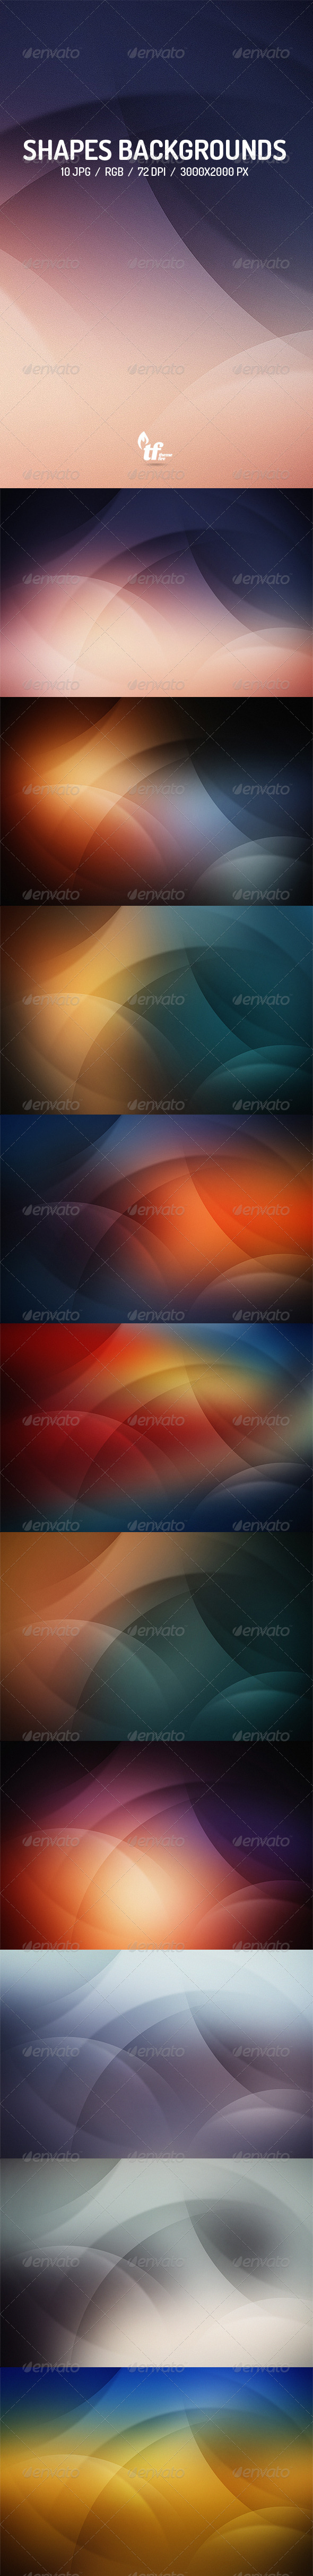 GraphicRiver 10 Shapes Backgrounds 8536136